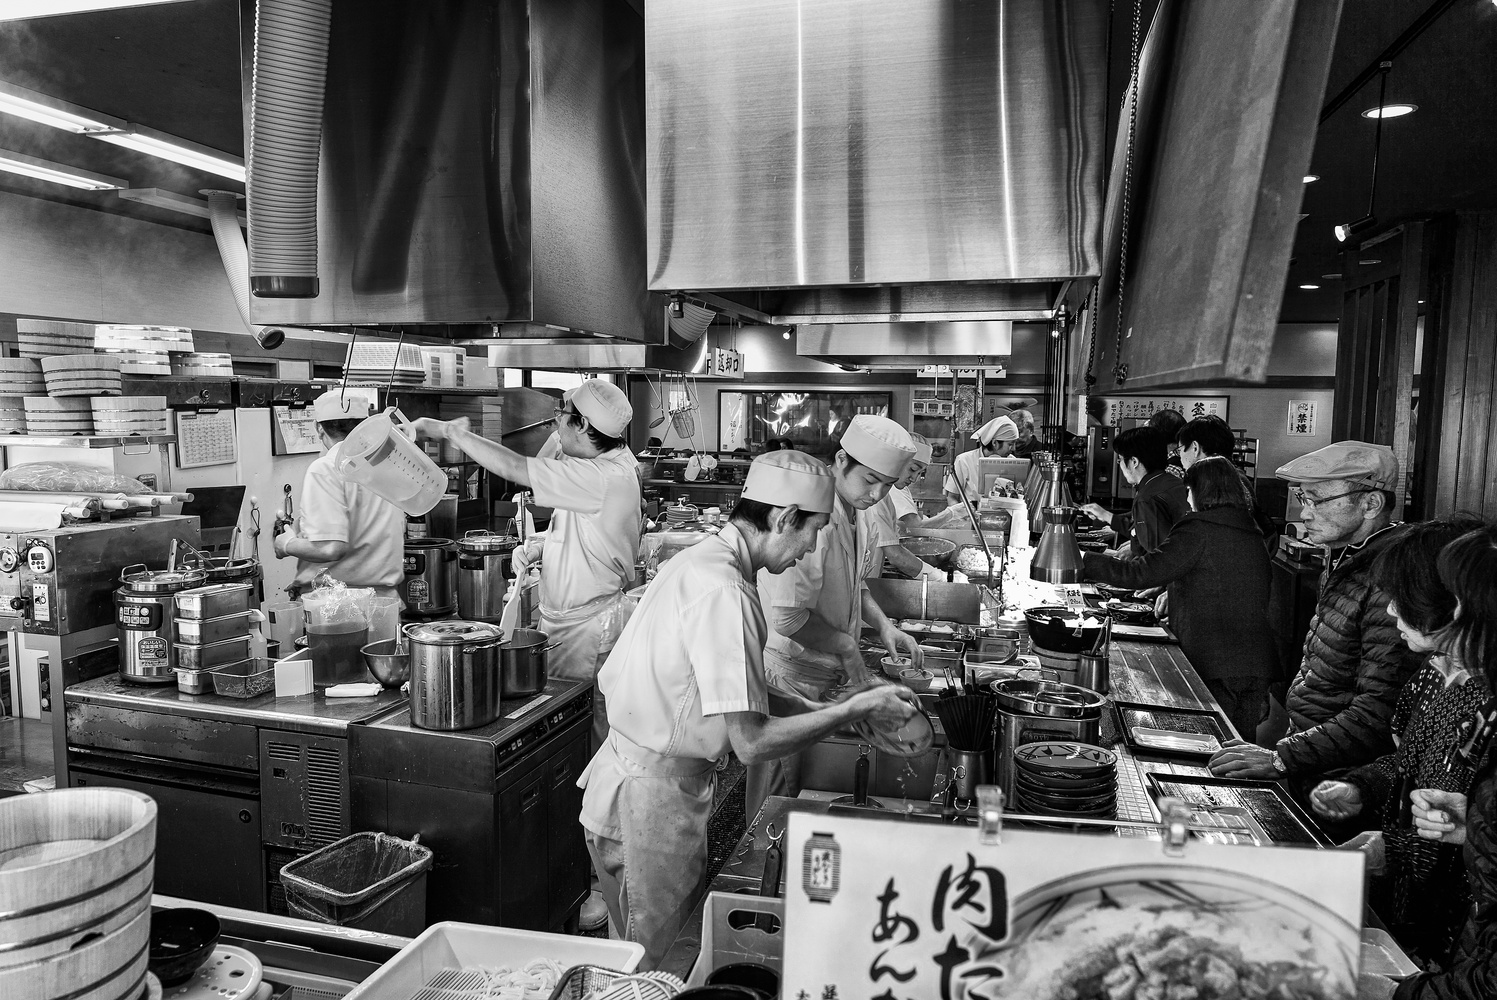 Japanese noodle shop by Tatsuhiko Ito